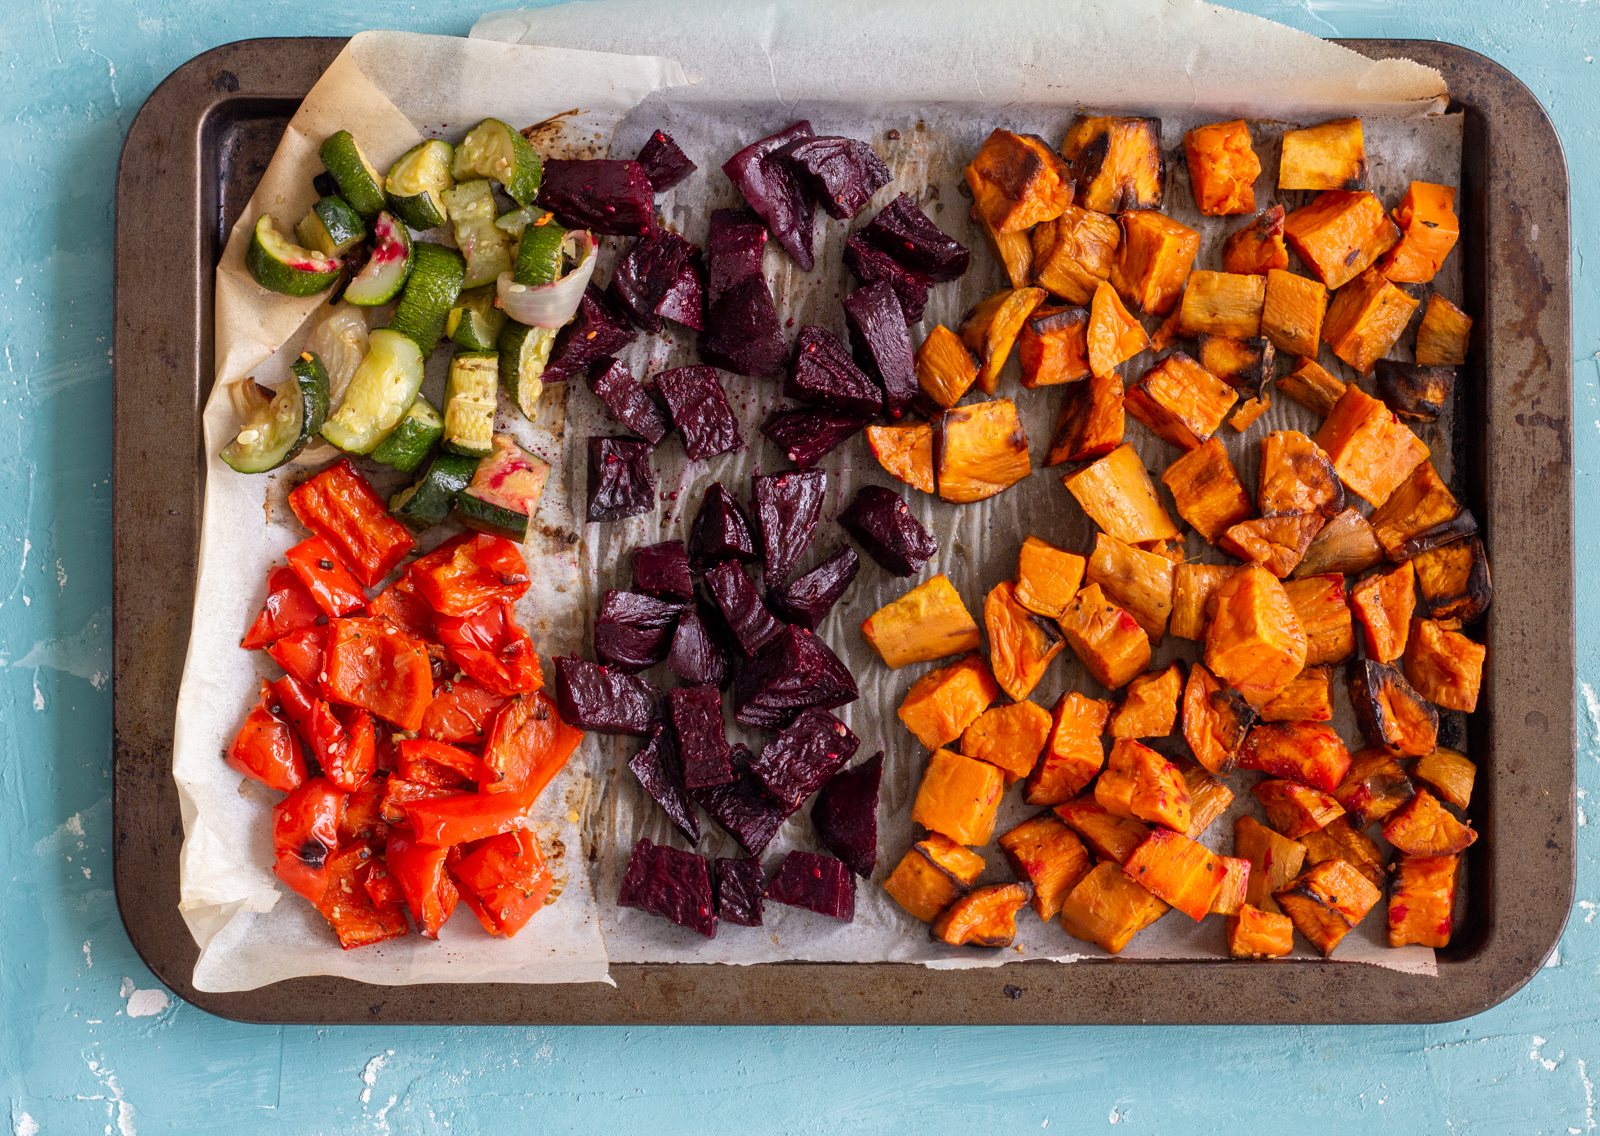 A baking tray with roasted vegetables on it cut in cubes - the vegetables are sweet potato, beetroot, red capsicum / red bell pepper and zucchini.